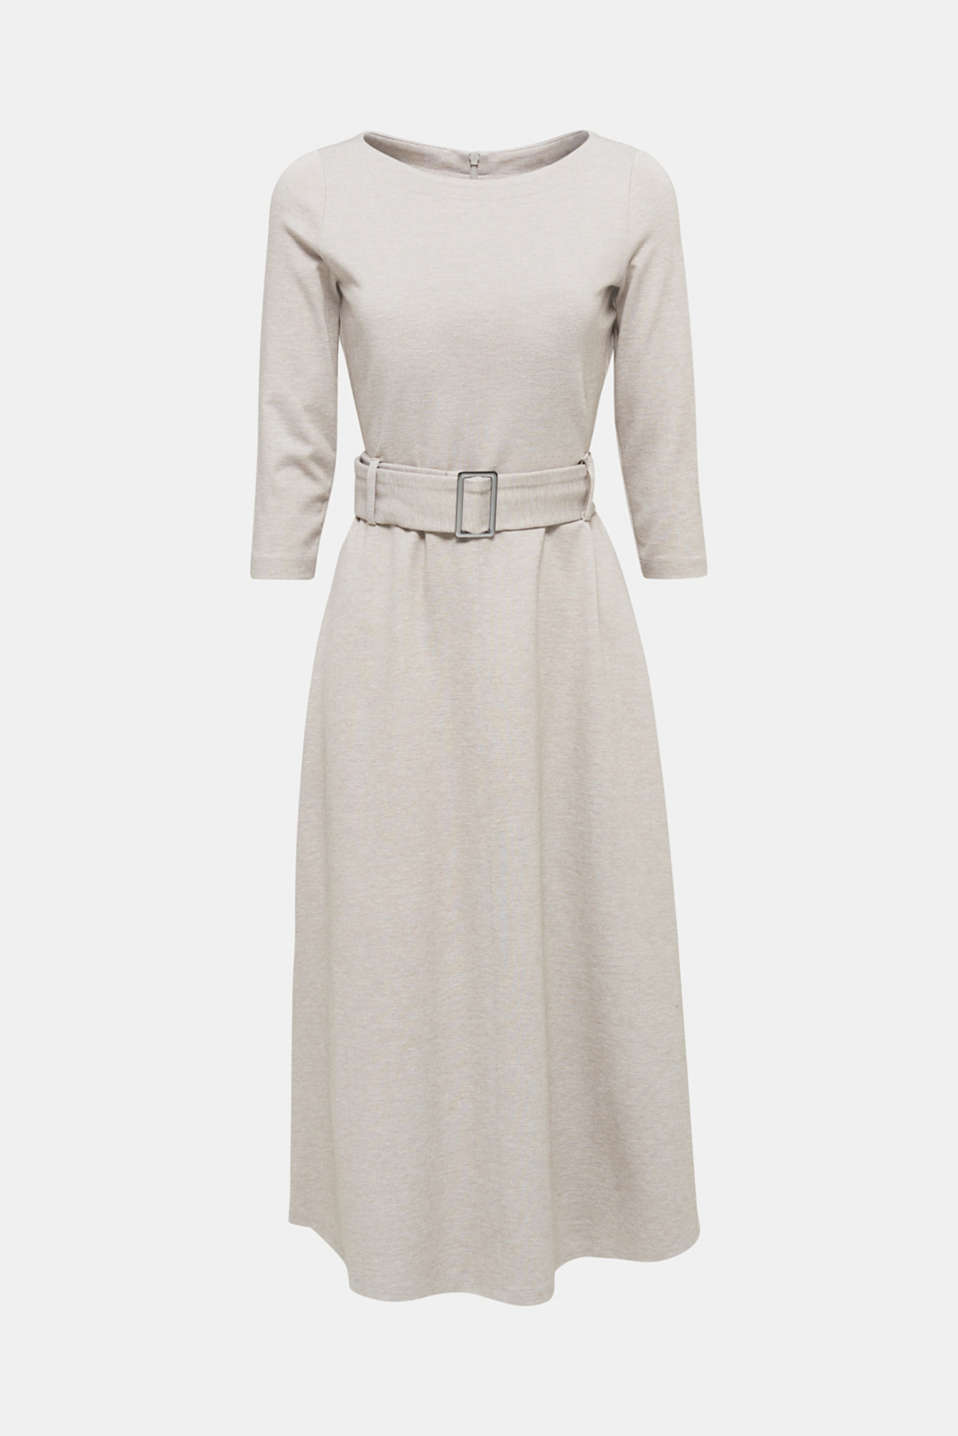 Stretch jersey dress with a belt, LIGHT BEIGE, detail image number 7